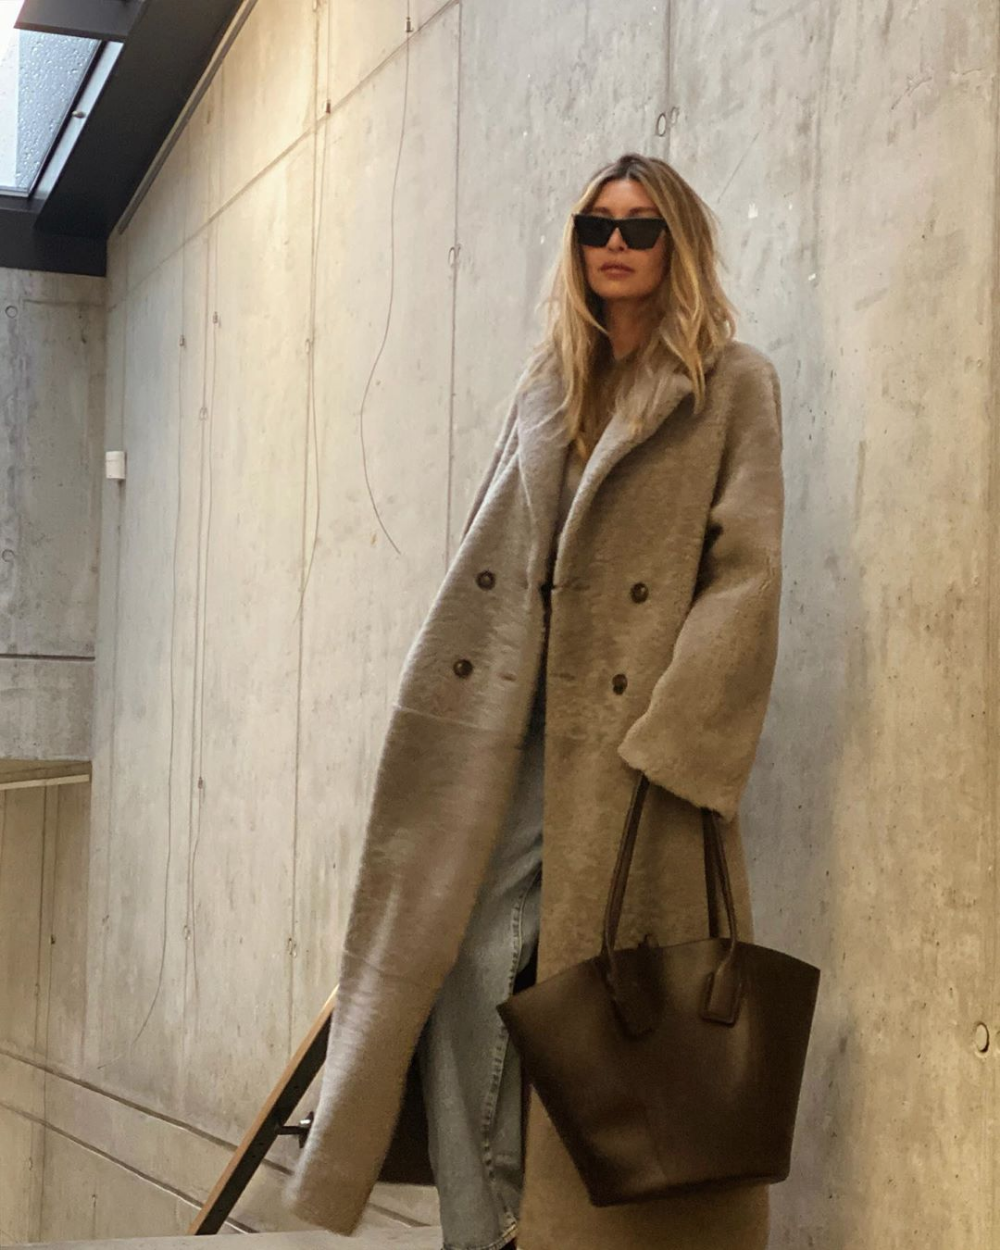 We're Obsessed With This Teddy Coat Look From Instagram 3